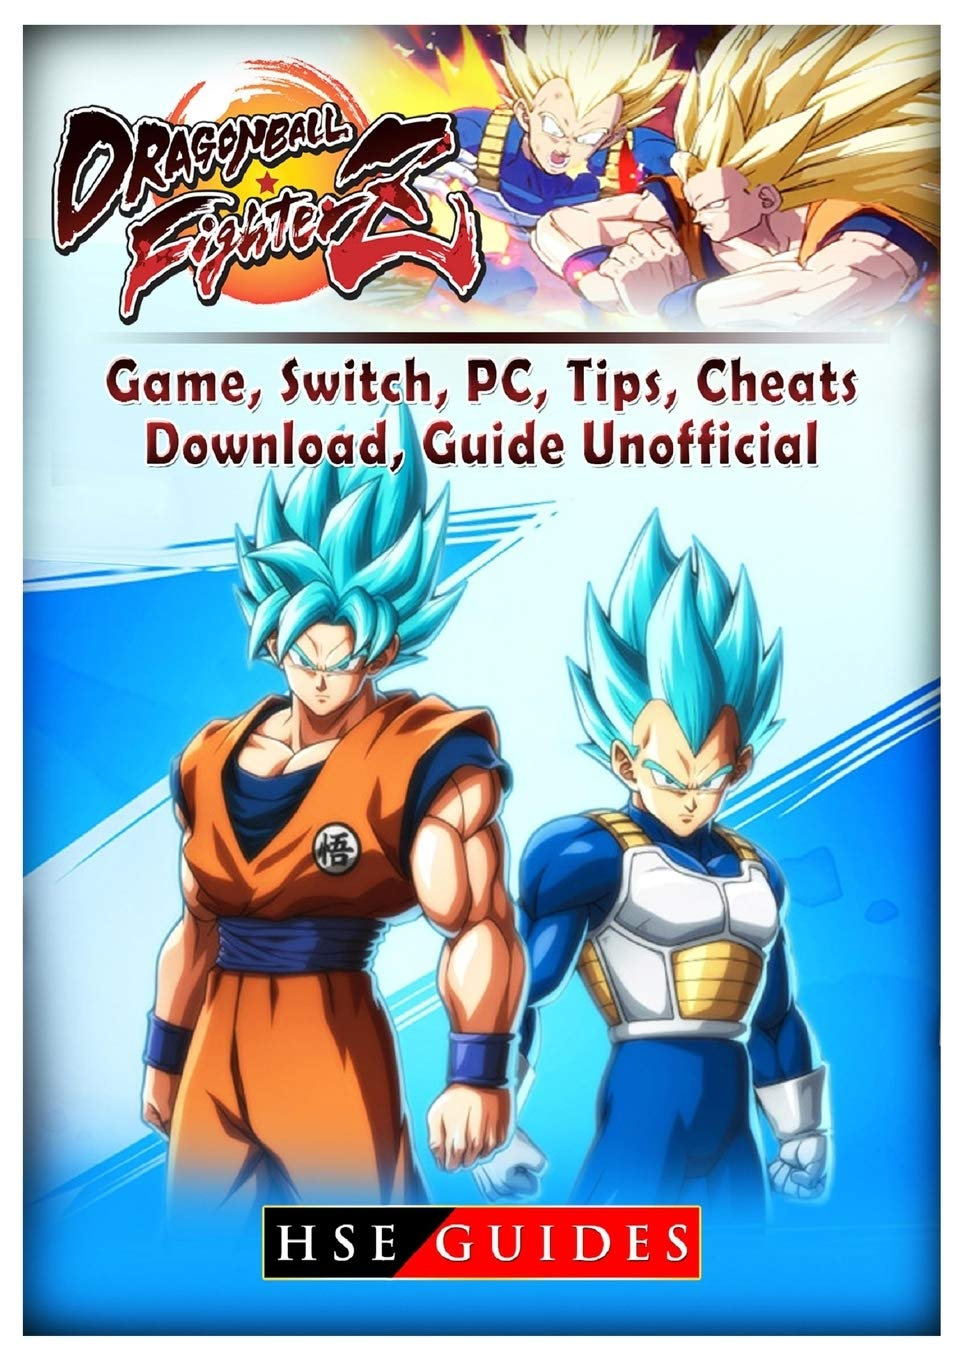 Dragon Ball Fighter Z Game, Switch, PC, Tips, Cheats, Download ...